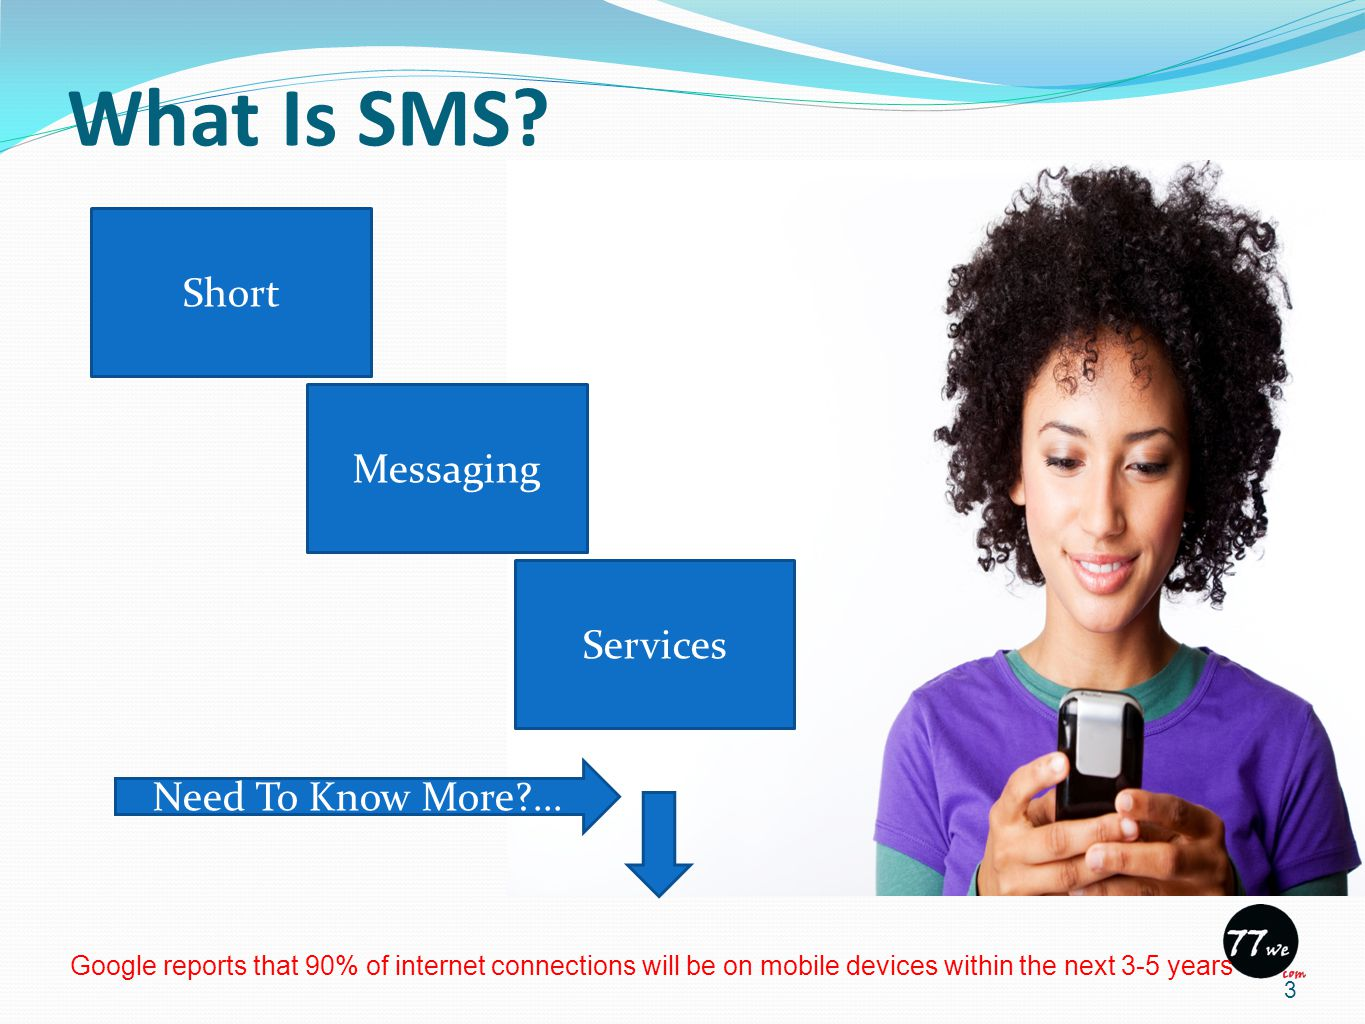 What Is SMS. 3 Short Services Messaging Need To Know More?...